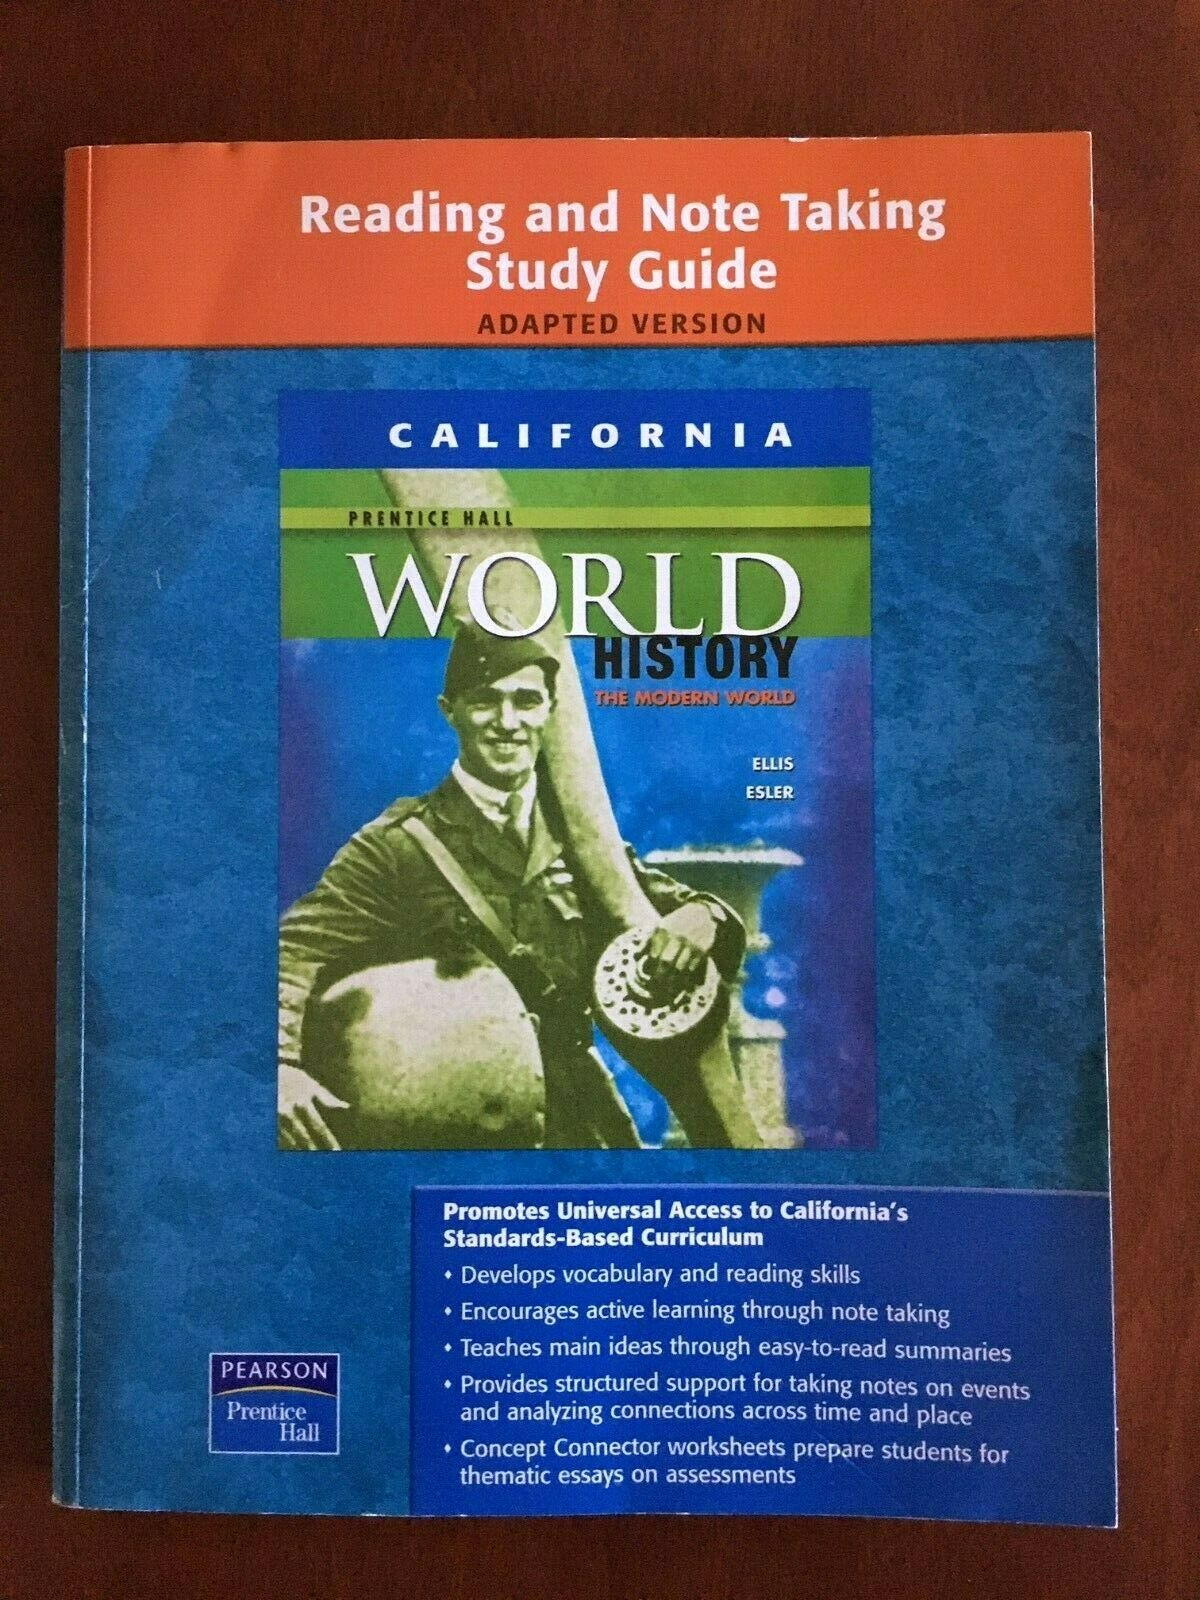 Prentice Hall World History Worksheets Printable Prentice Hall World History Study Guide Like New No Marked Pages